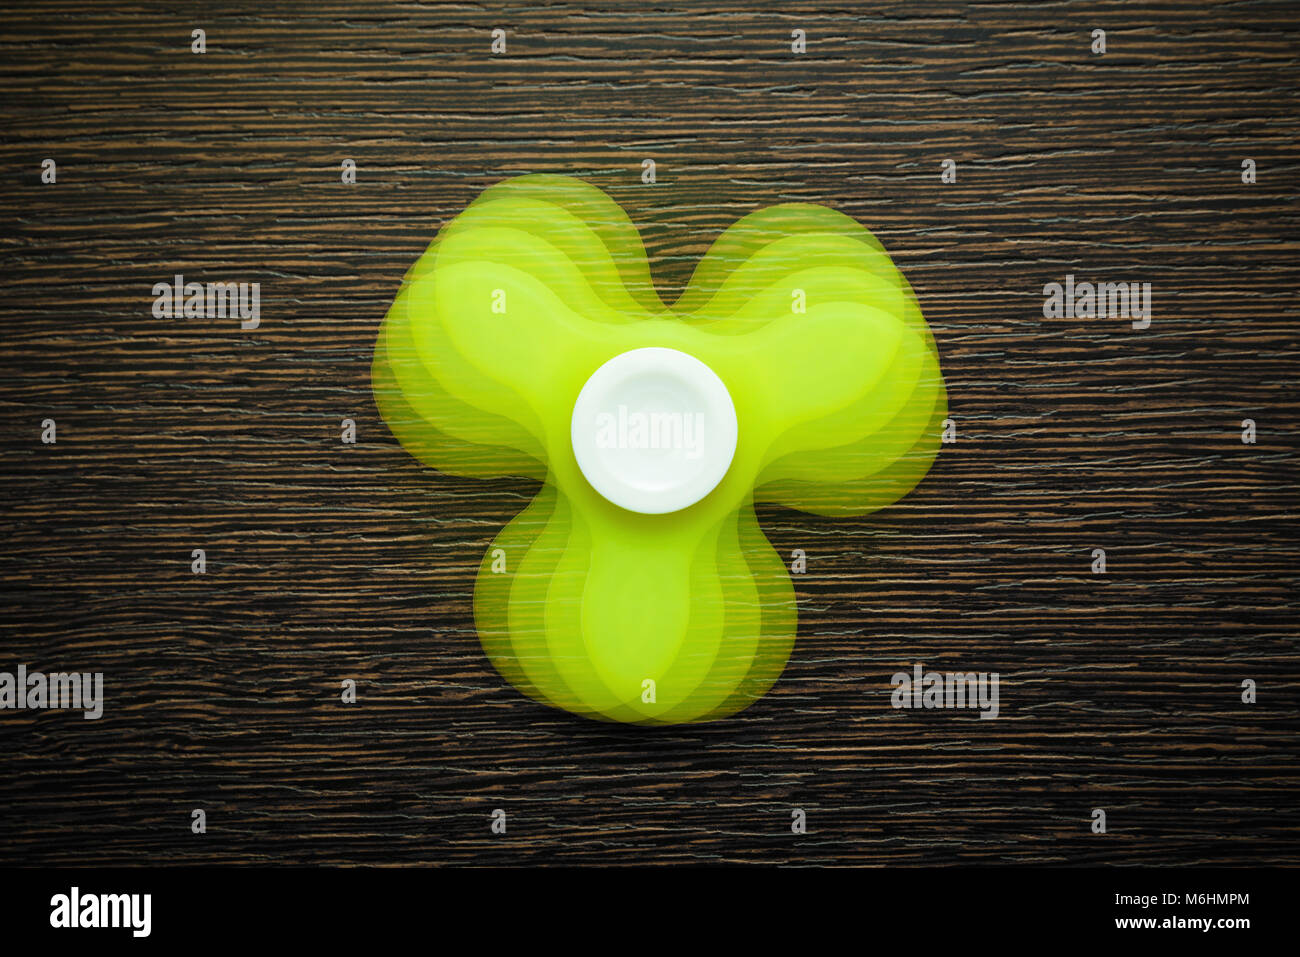 Green fidget spinner spinning on wooden table, shot with repeating flash for stroboscopic effect - Stock Image